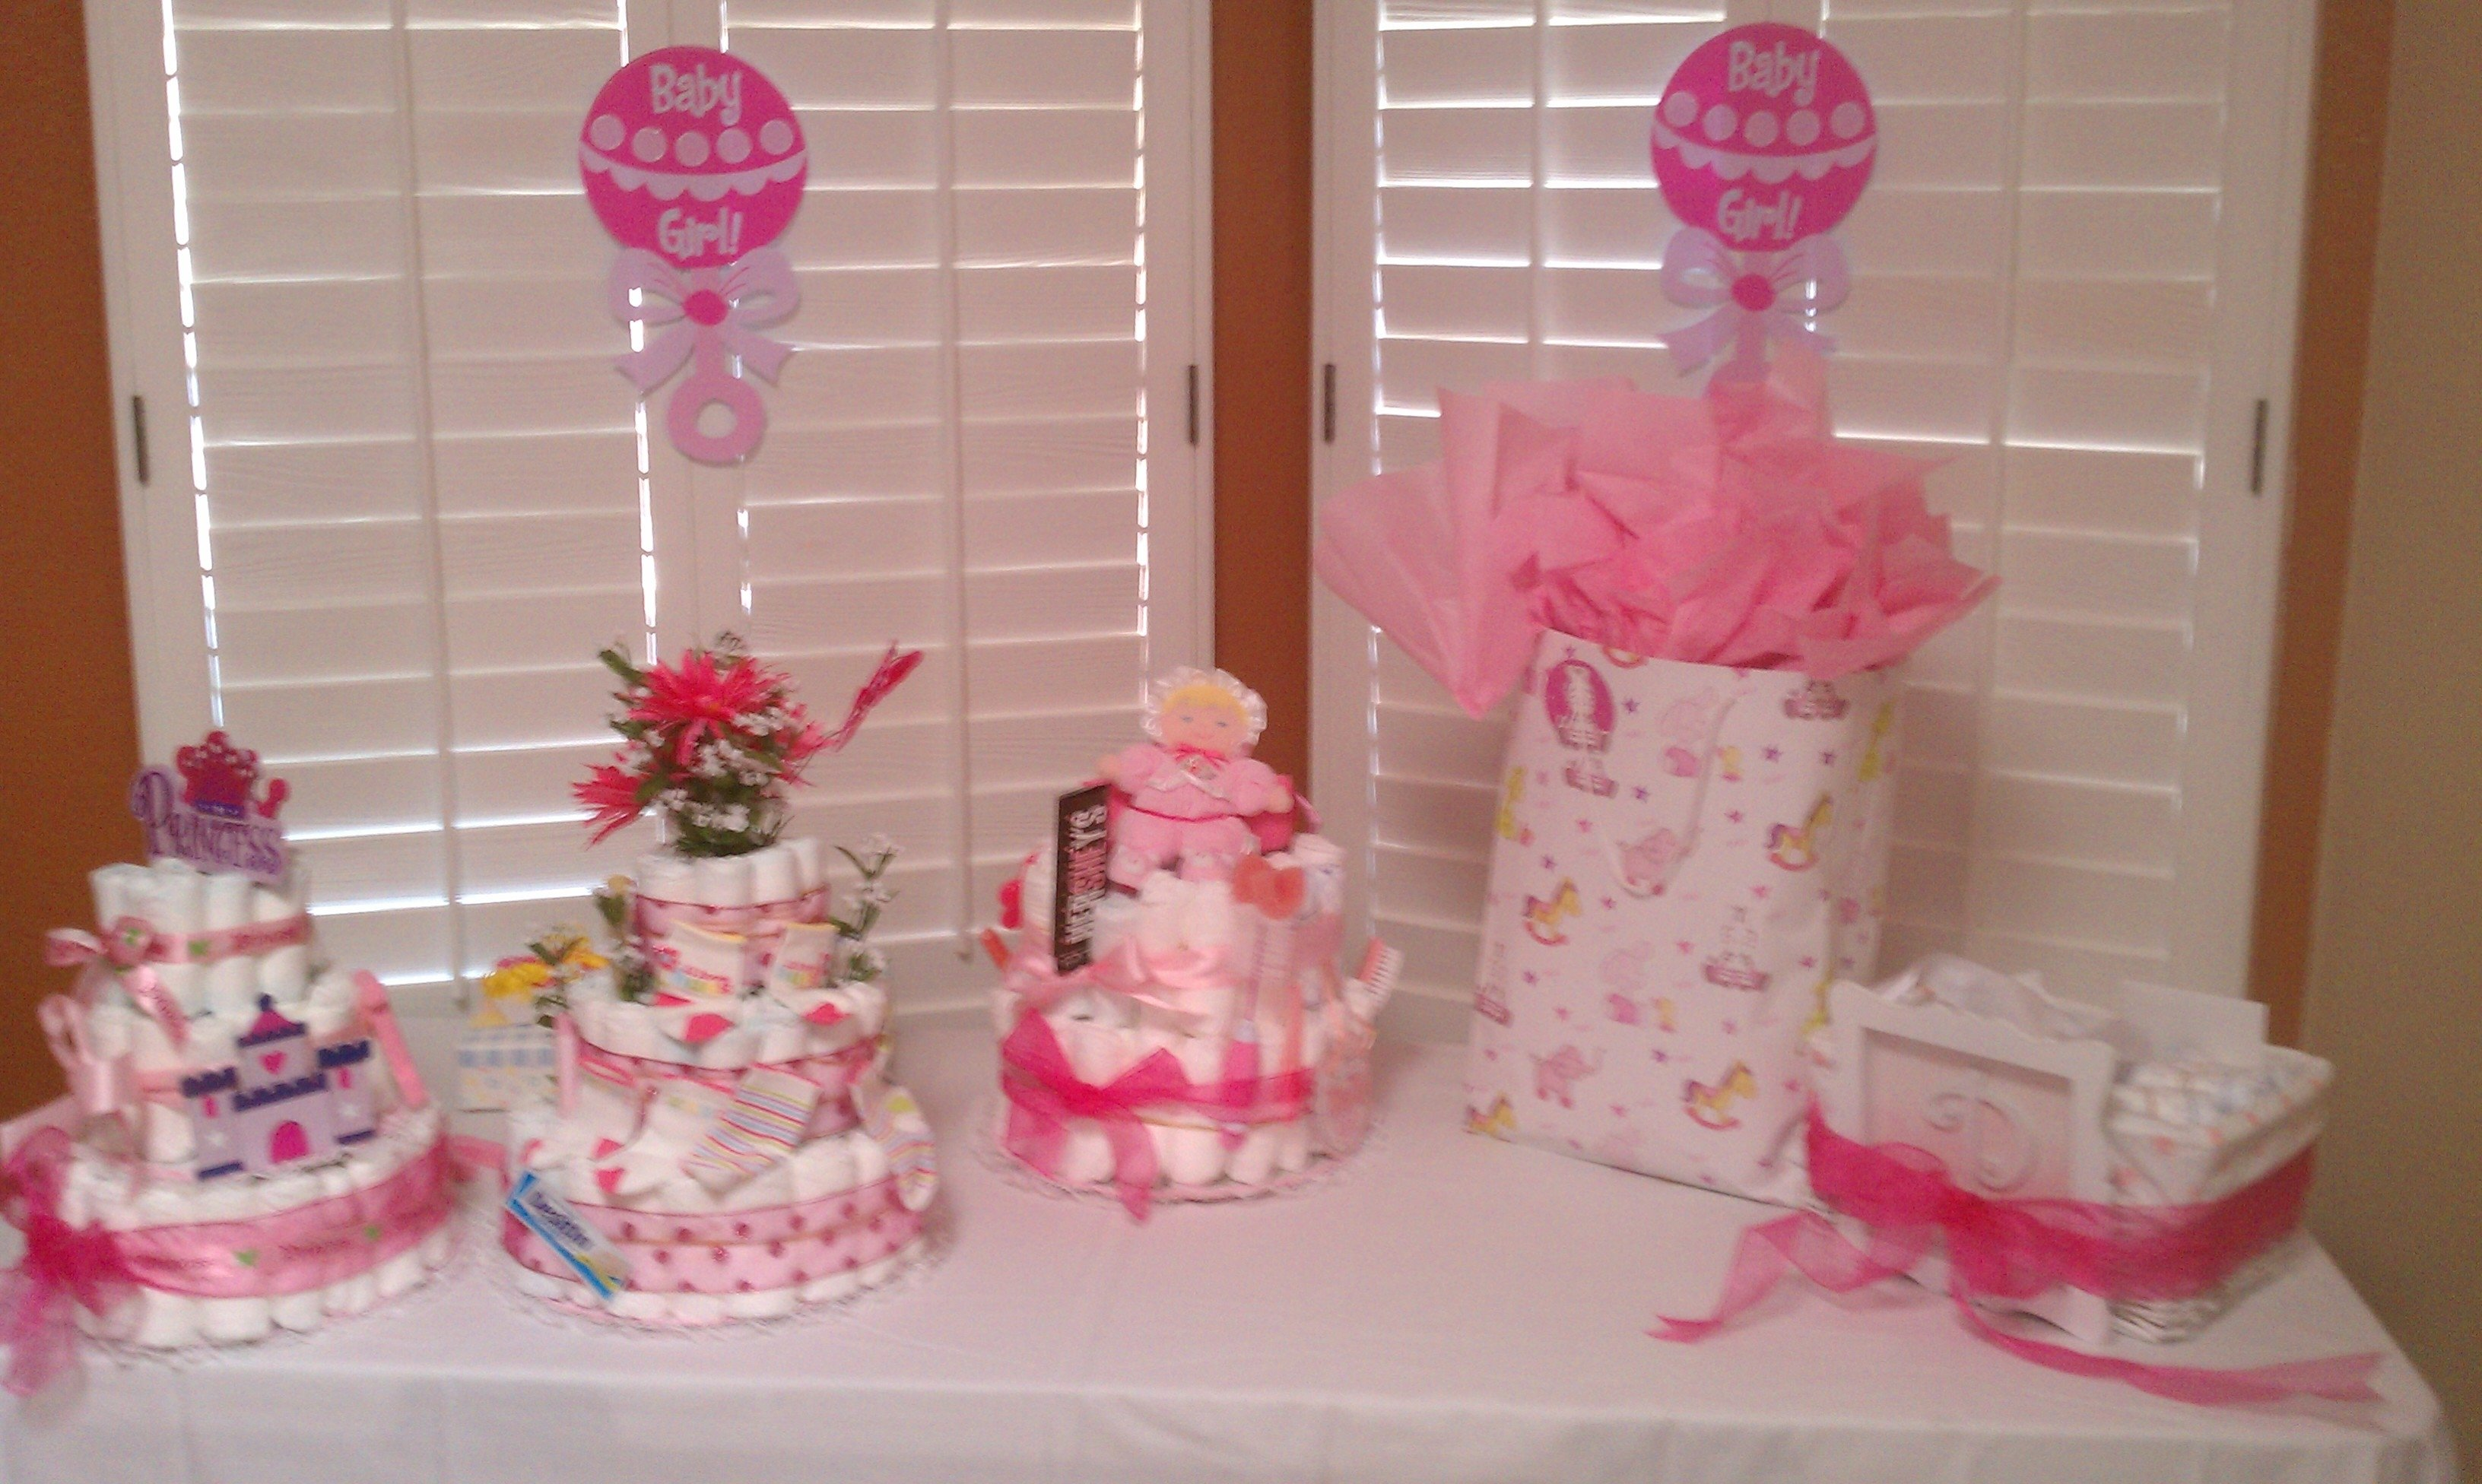 10 Fashionable Baby Shower Gift Table Ideas baby shower gift table ideas omega center ideas for baby 2020